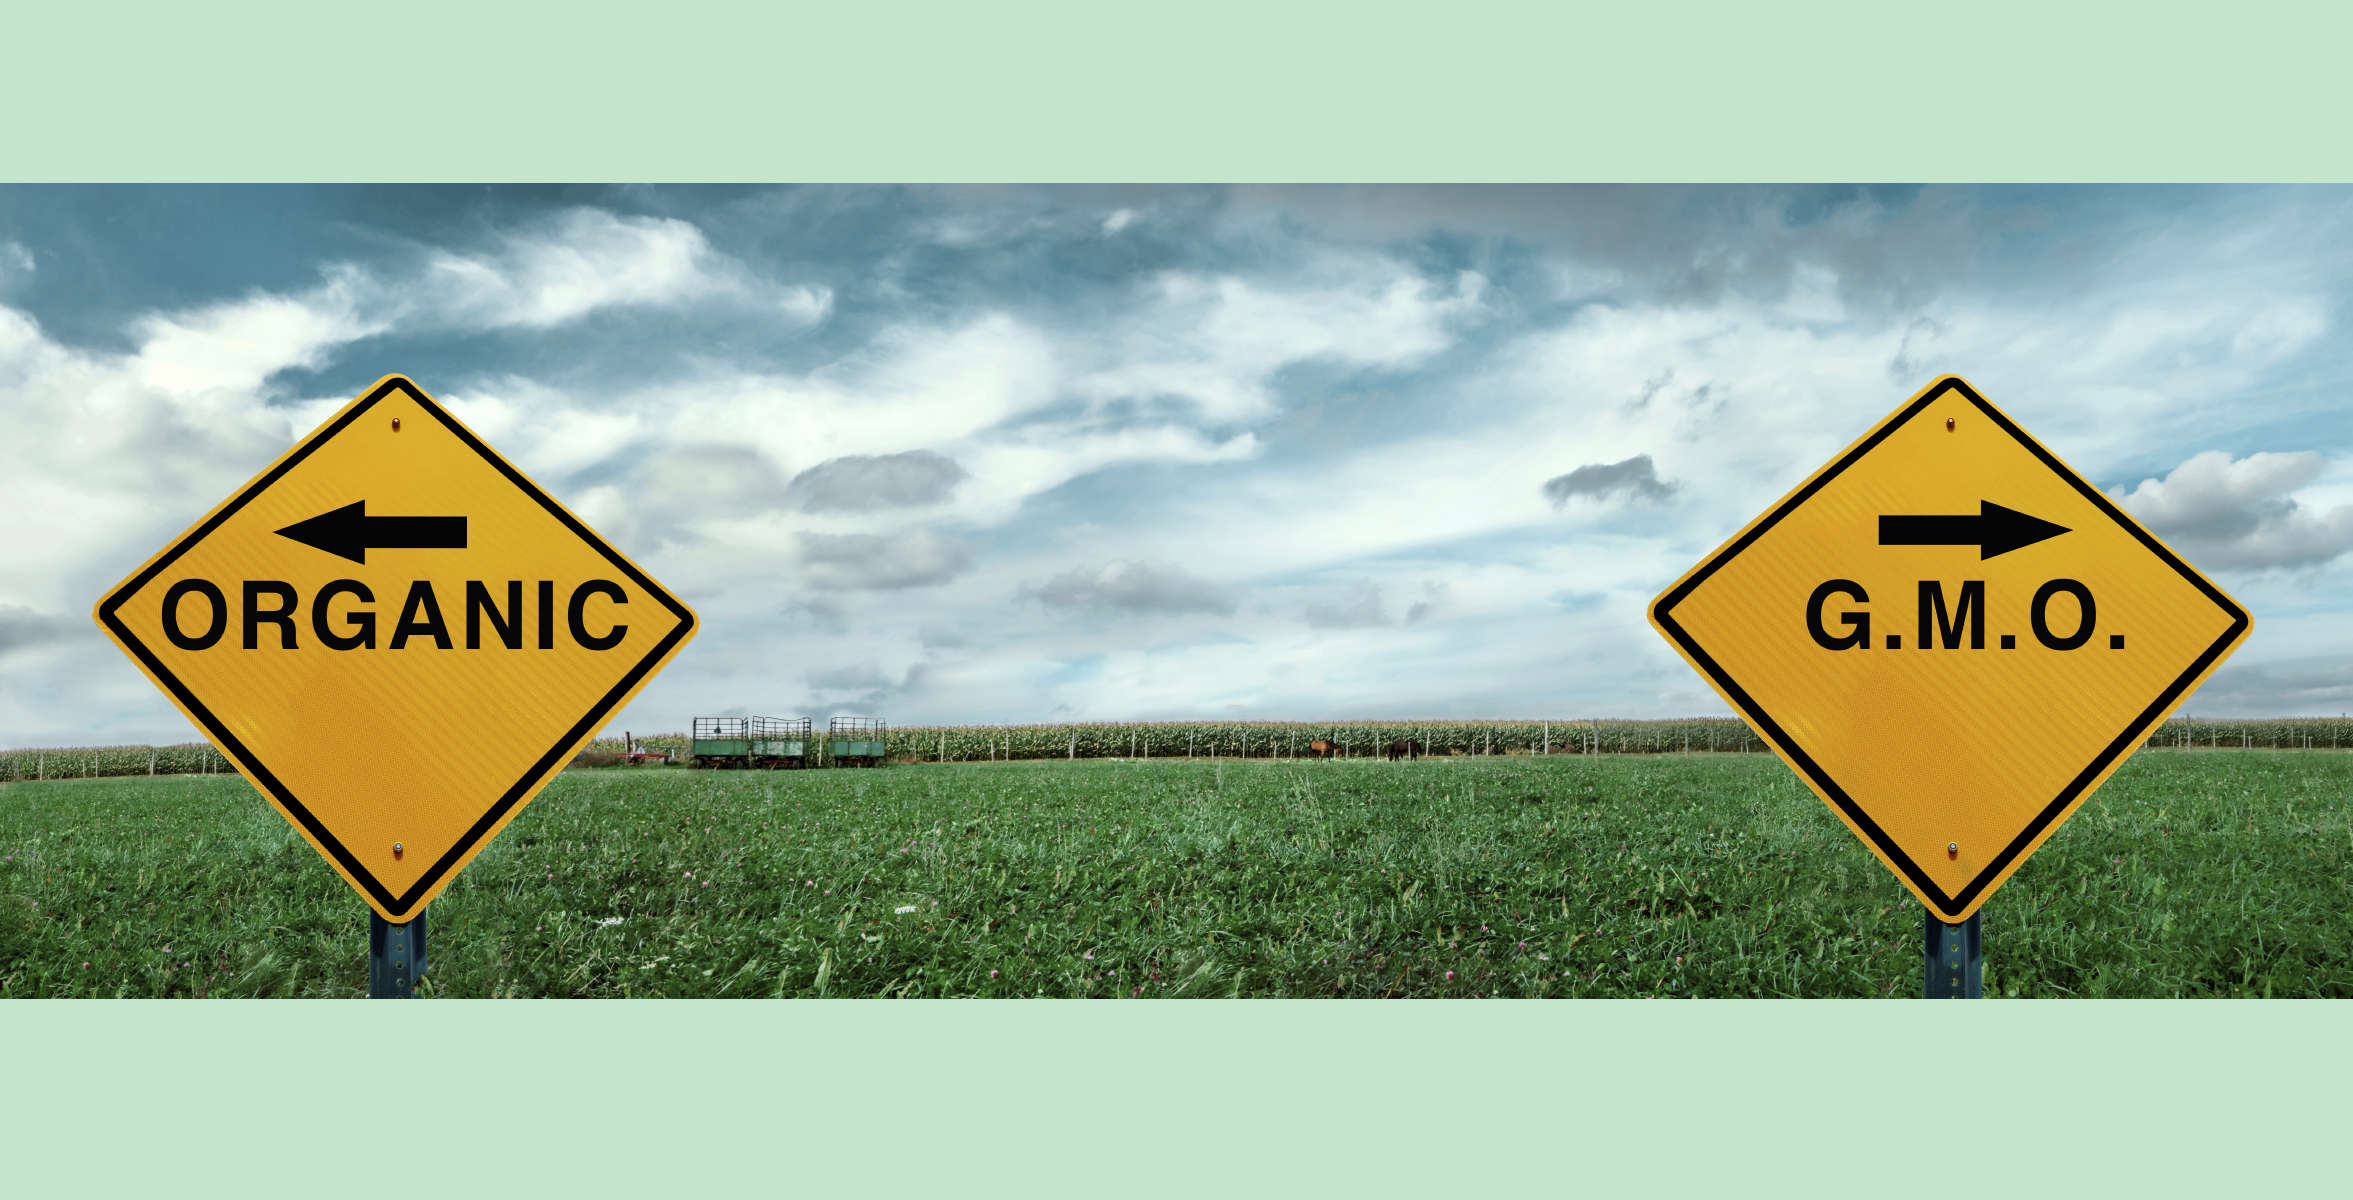 Organic vs GMO signs in field